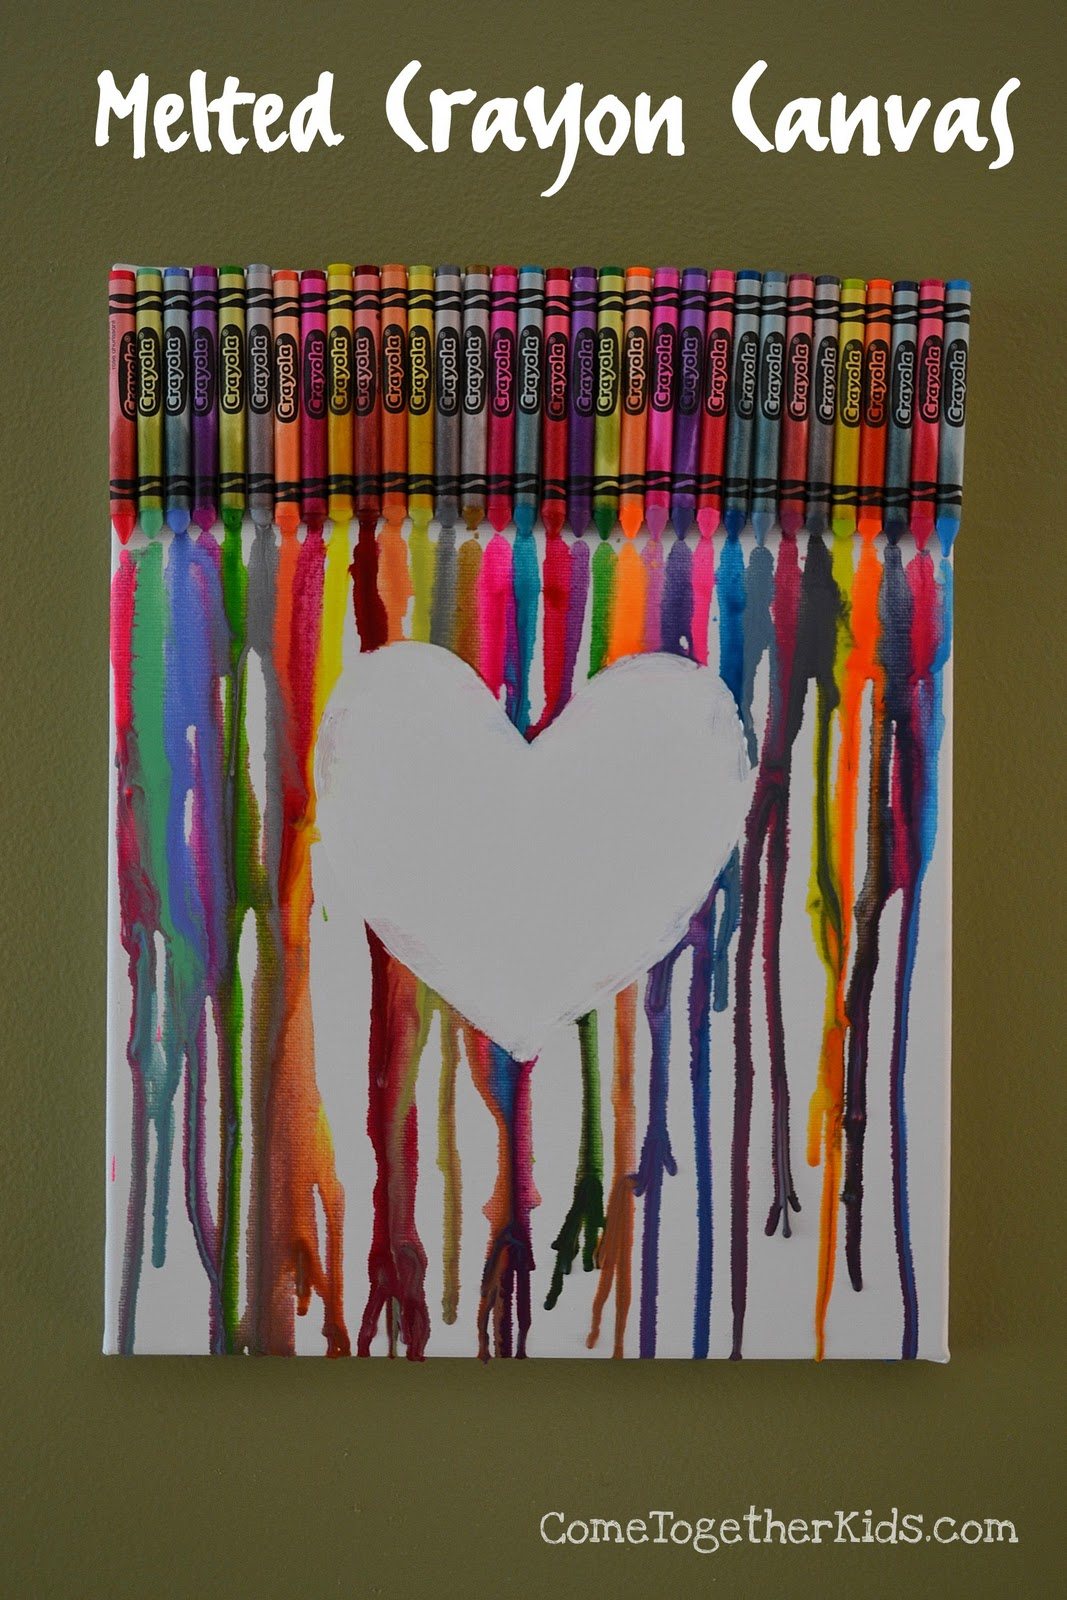 Come Together Kids Melted Crayon Canvas